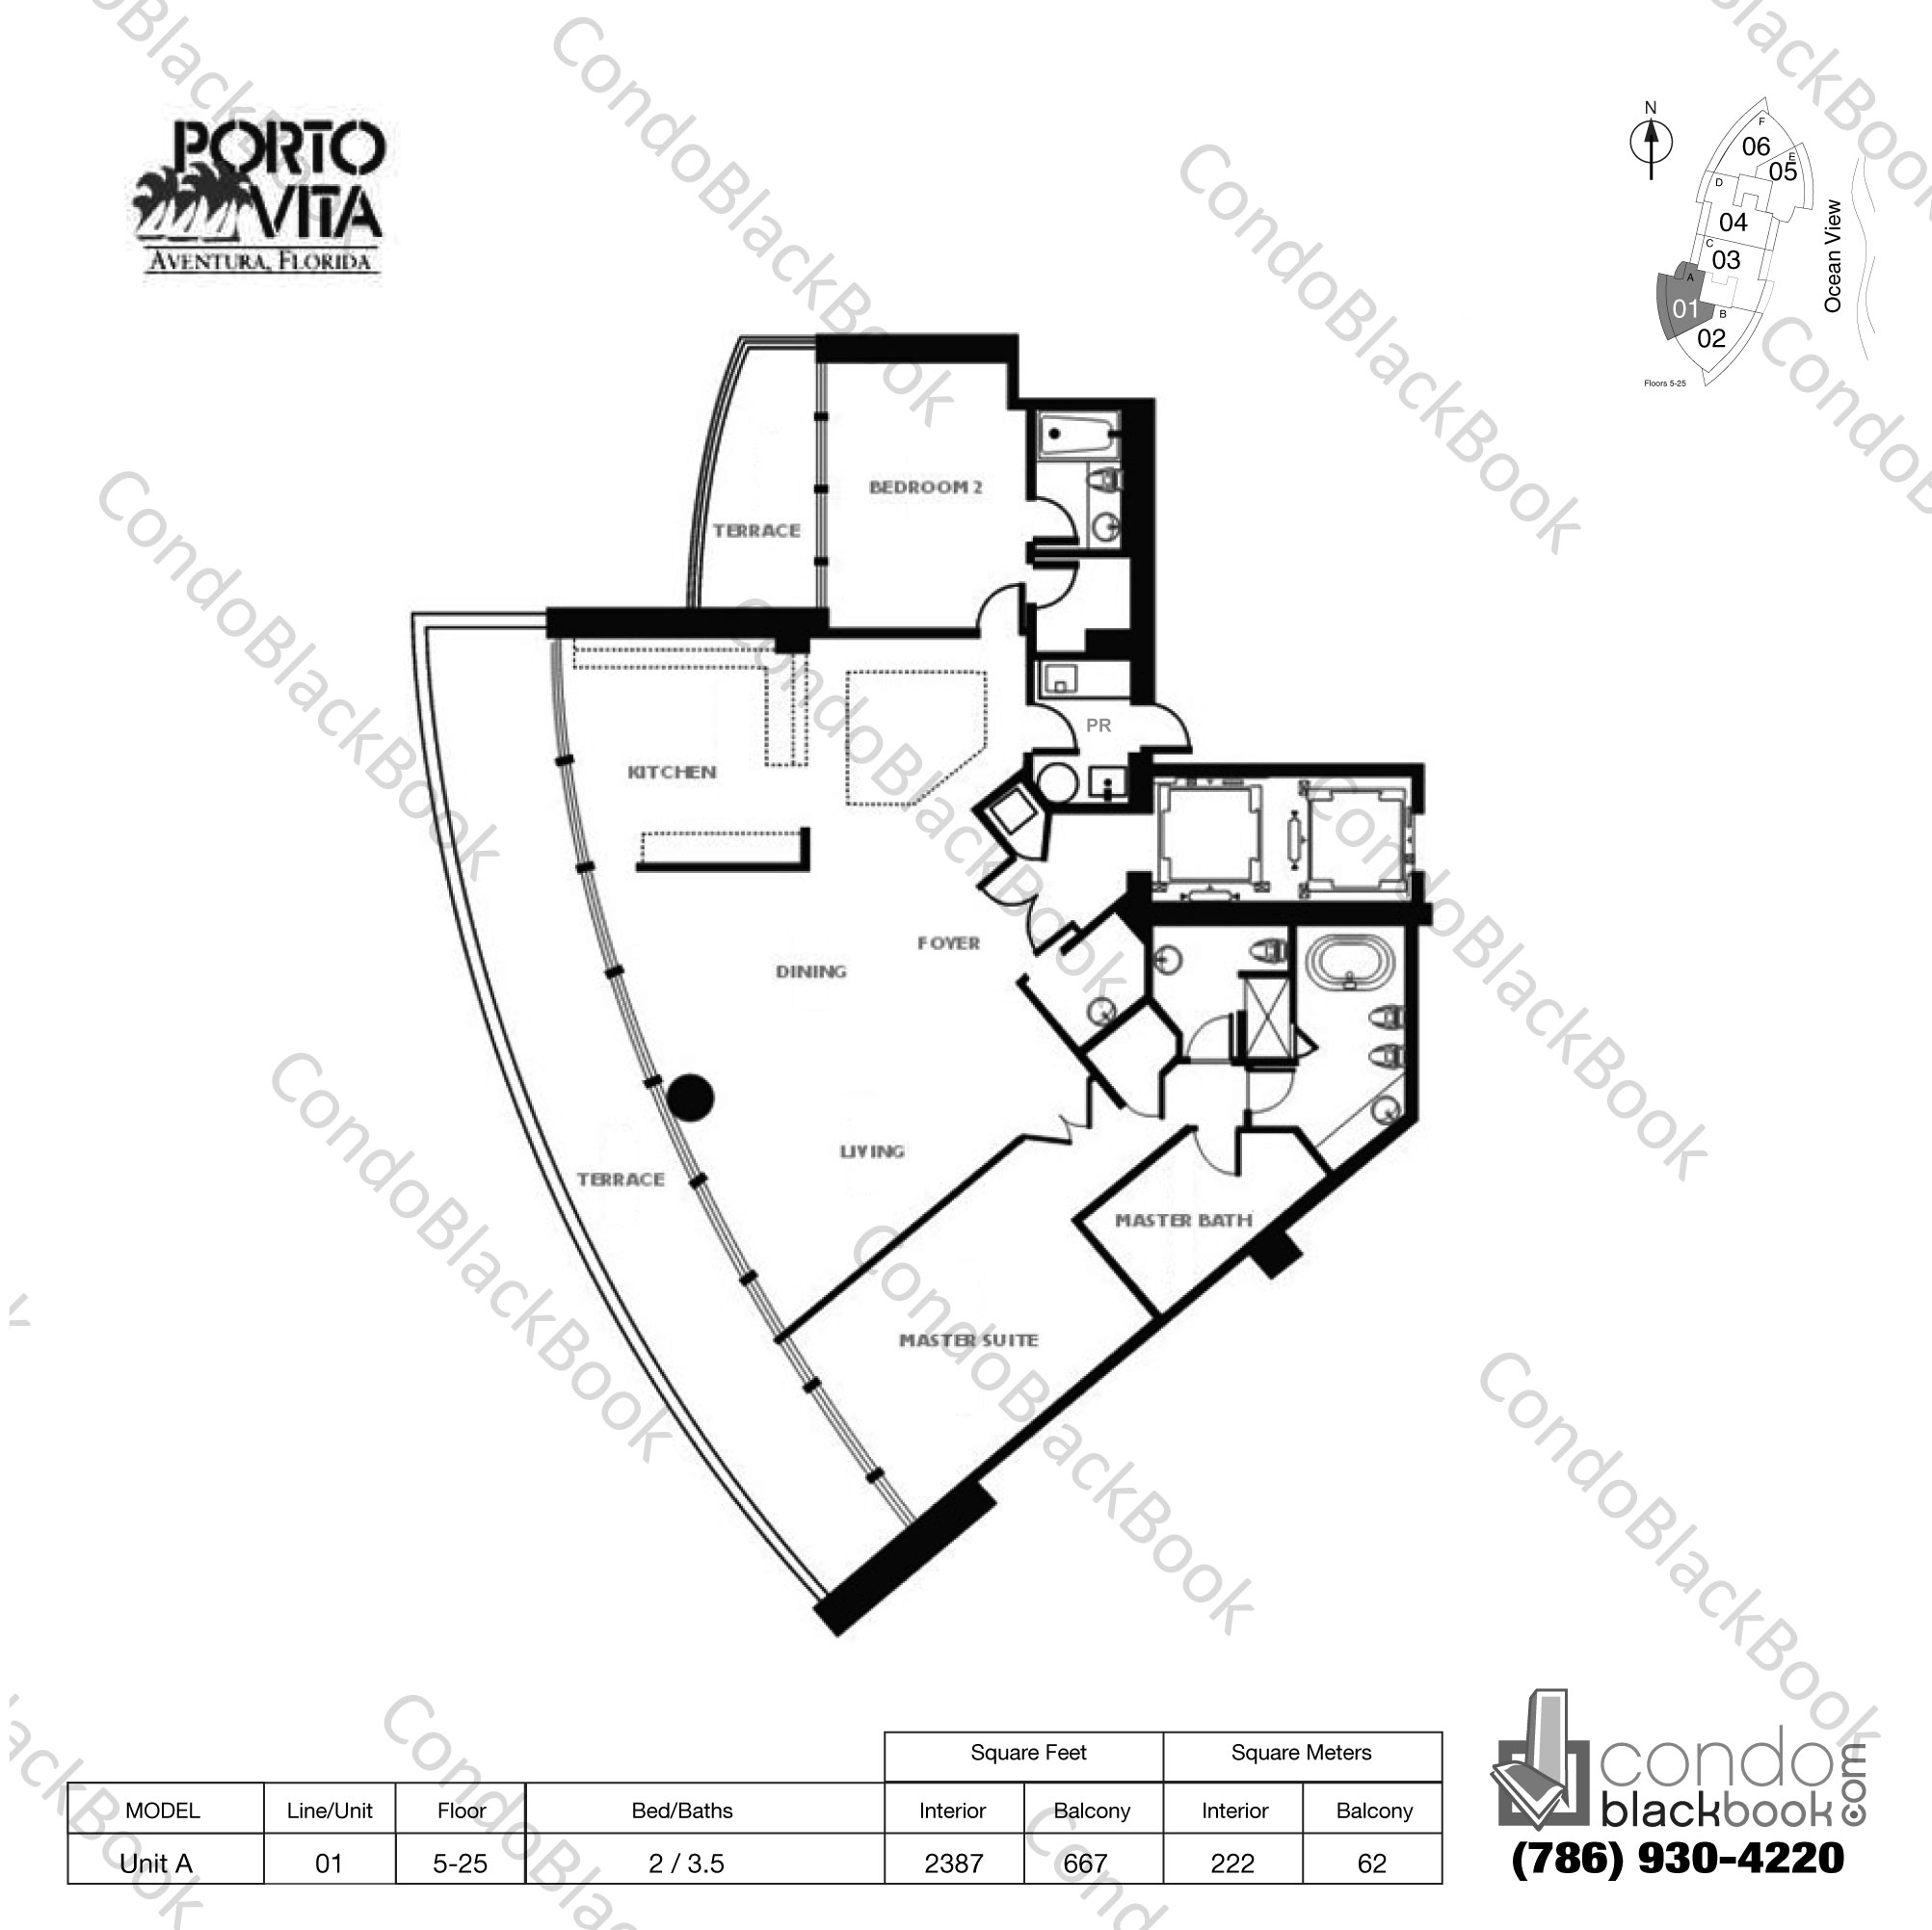 Floor plan for Porto Vita South Tower Aventura, model Unit A, line 01, 2 / 3.5 bedrooms, 2387 sq ft